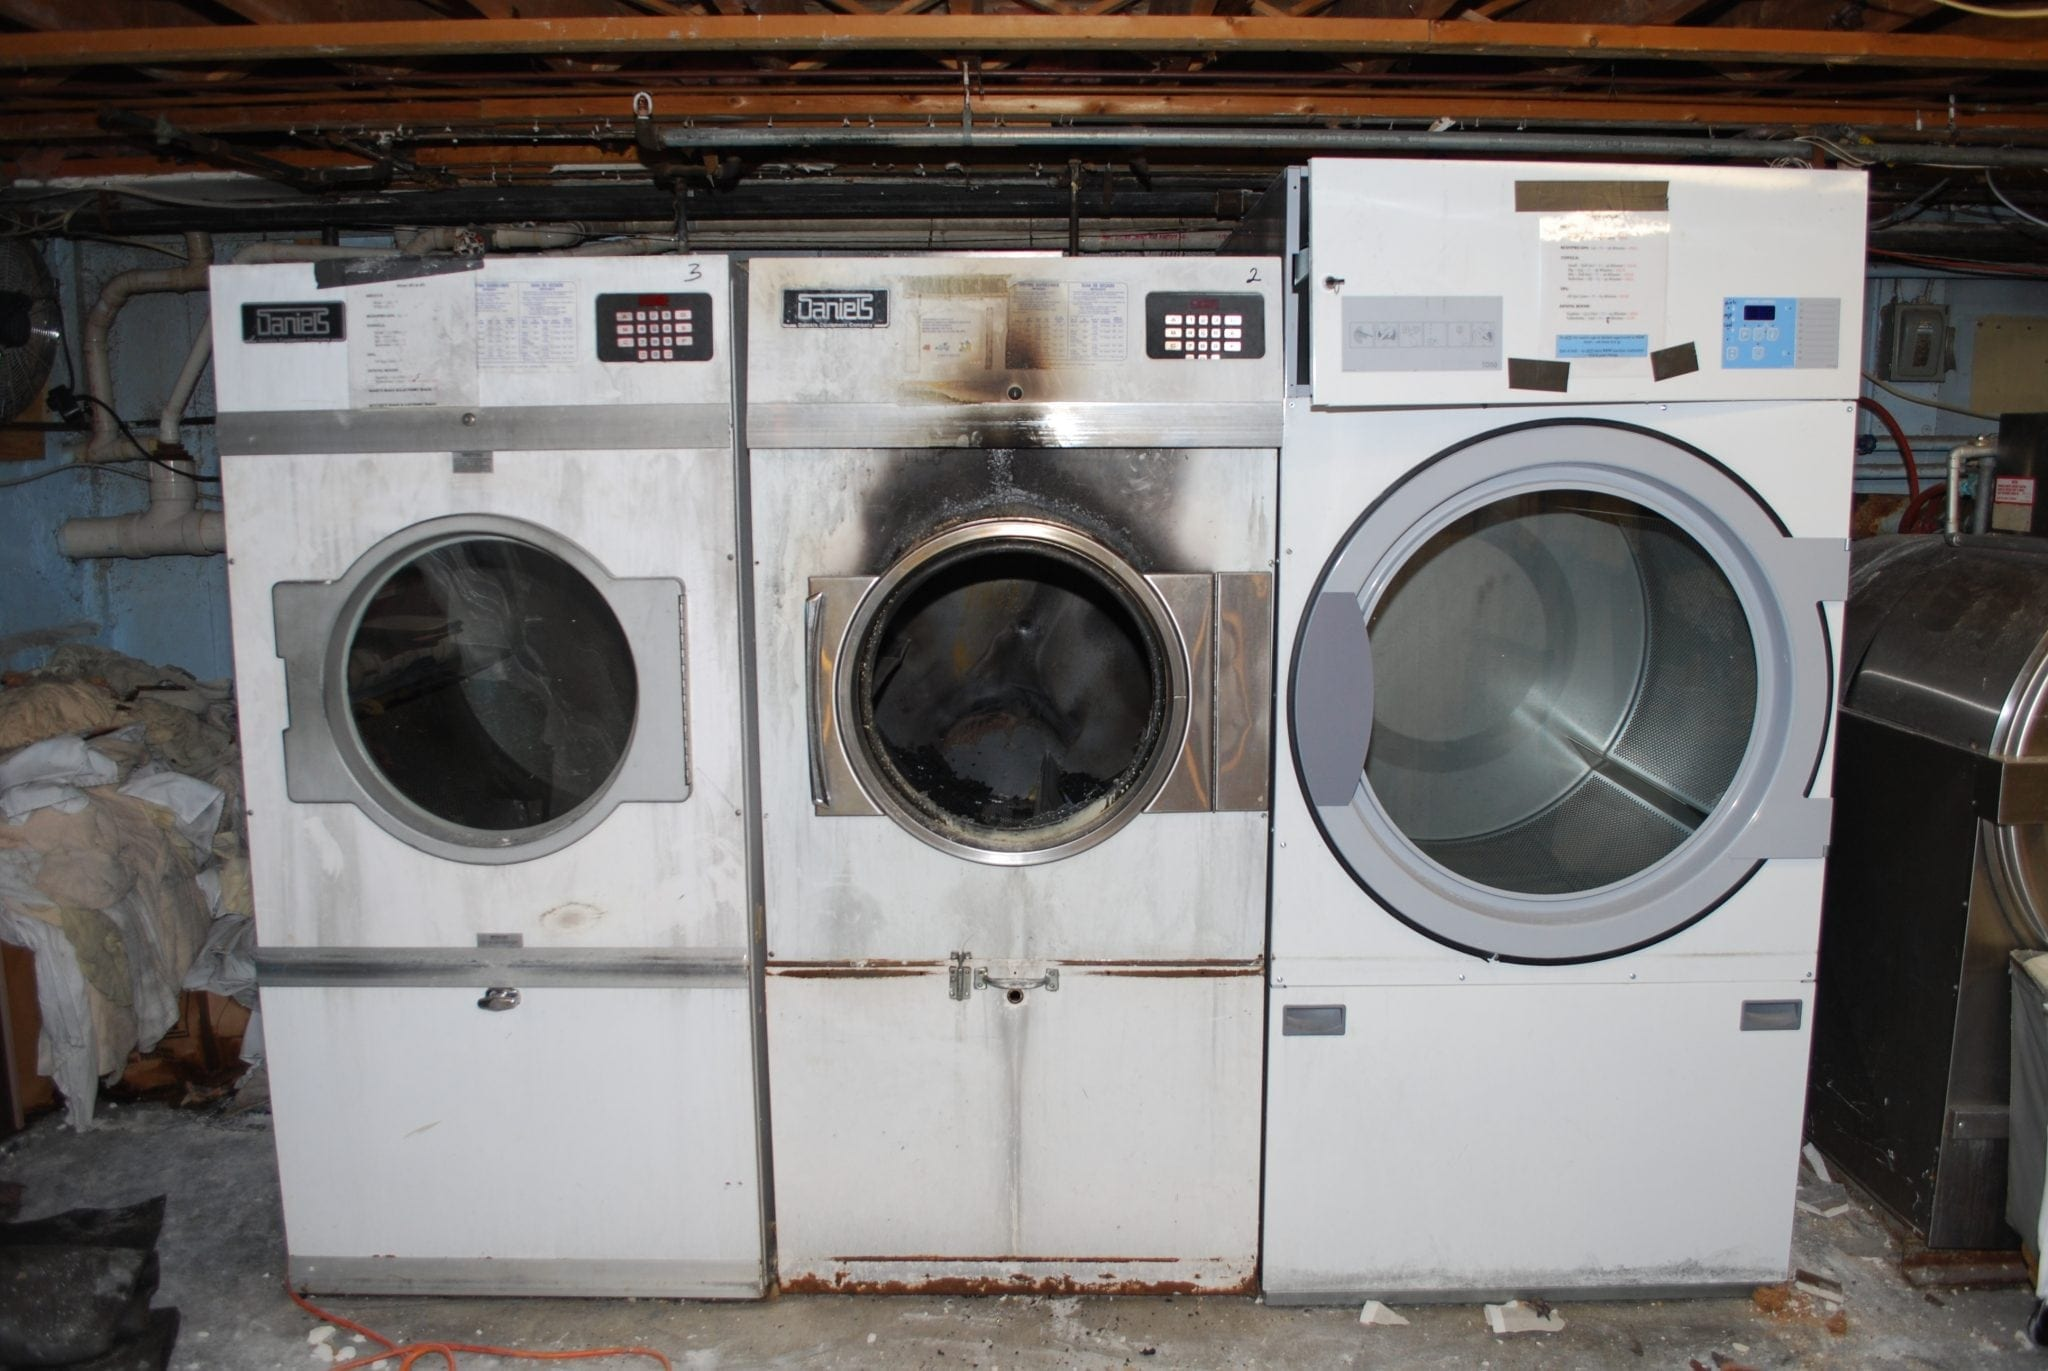 Commercial Dryer Fire on Lab Equipment